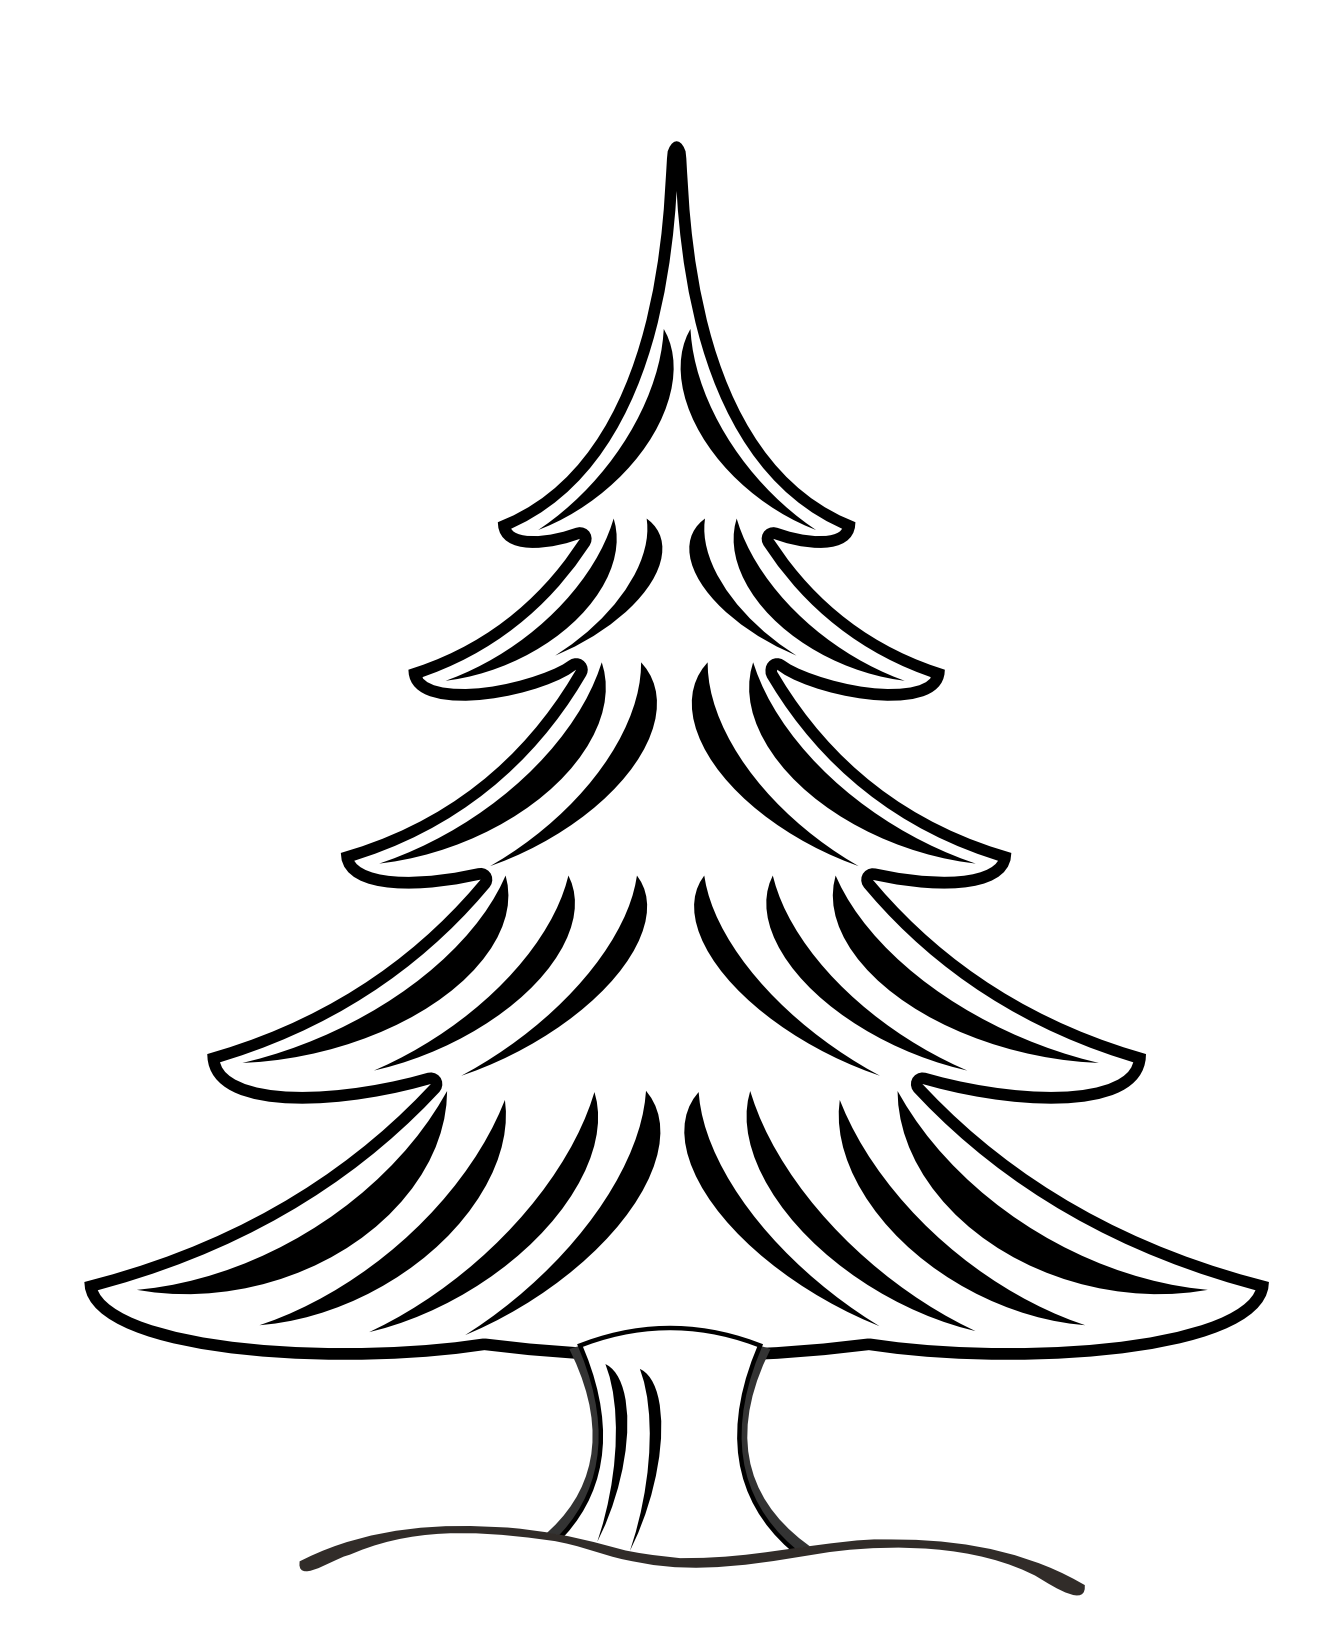 Free clipart christmas black and white picture library Tree Clipart Black And White | Clipart Panda - Free Clipart Images picture library